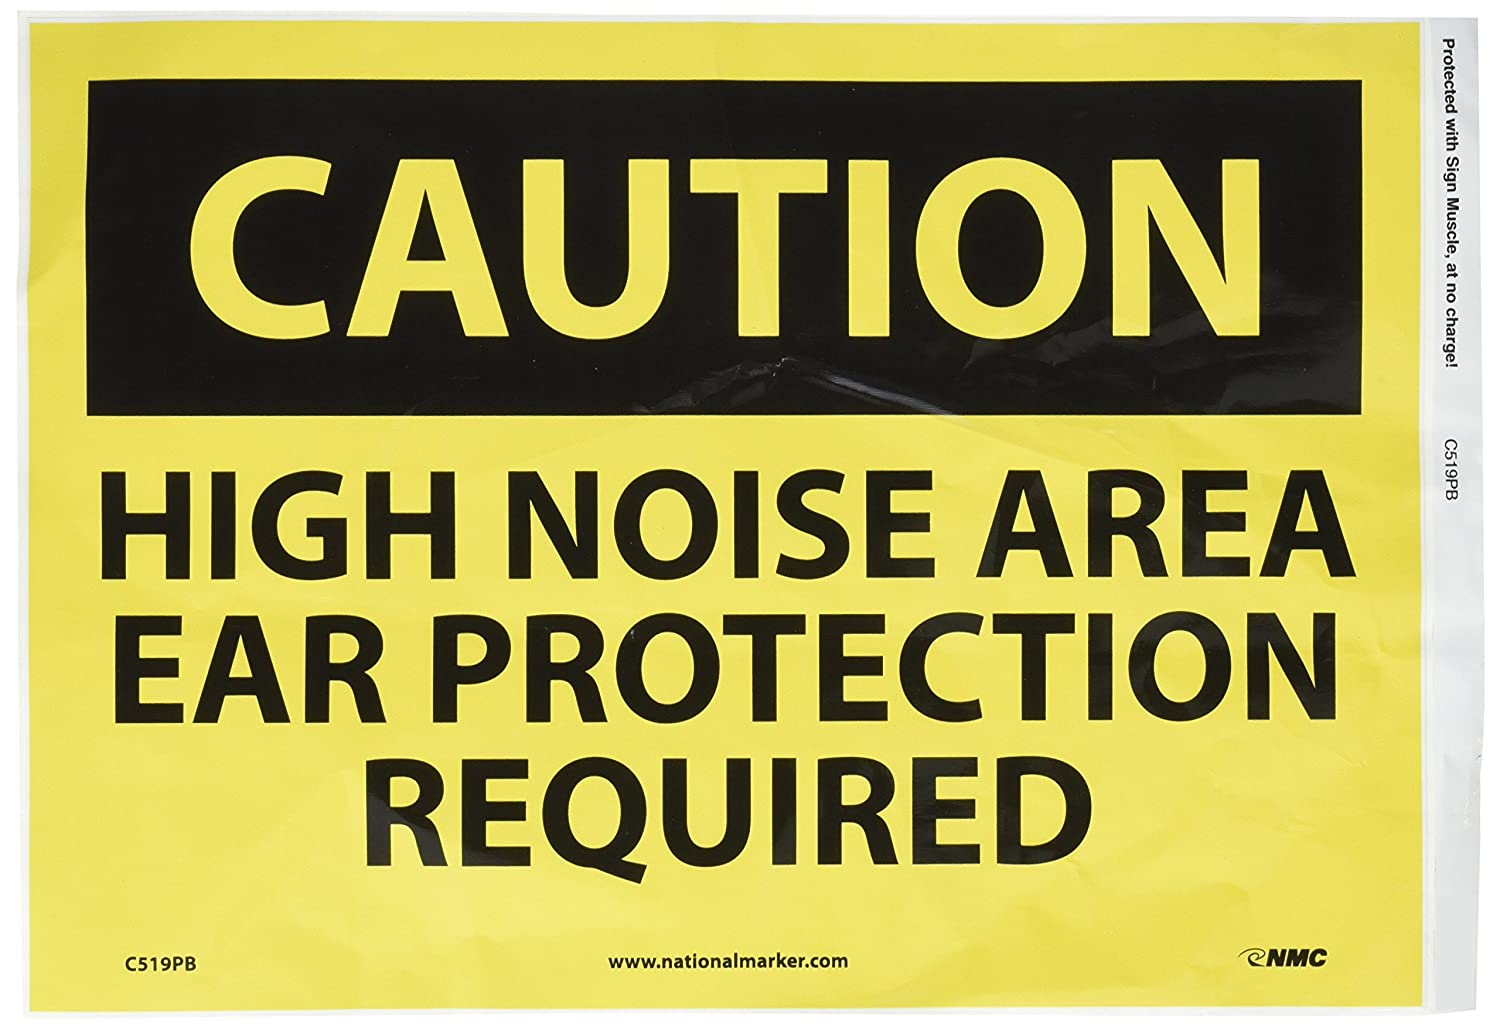 NMC C519PB OSHA Sign, LegendCAUTION - HIGH NOISE AREA EAR PROTECTION REQUIRED, 14 Length x 10 Height, Pressure Sensitive Adhesive Vinyl, Black on Yellow